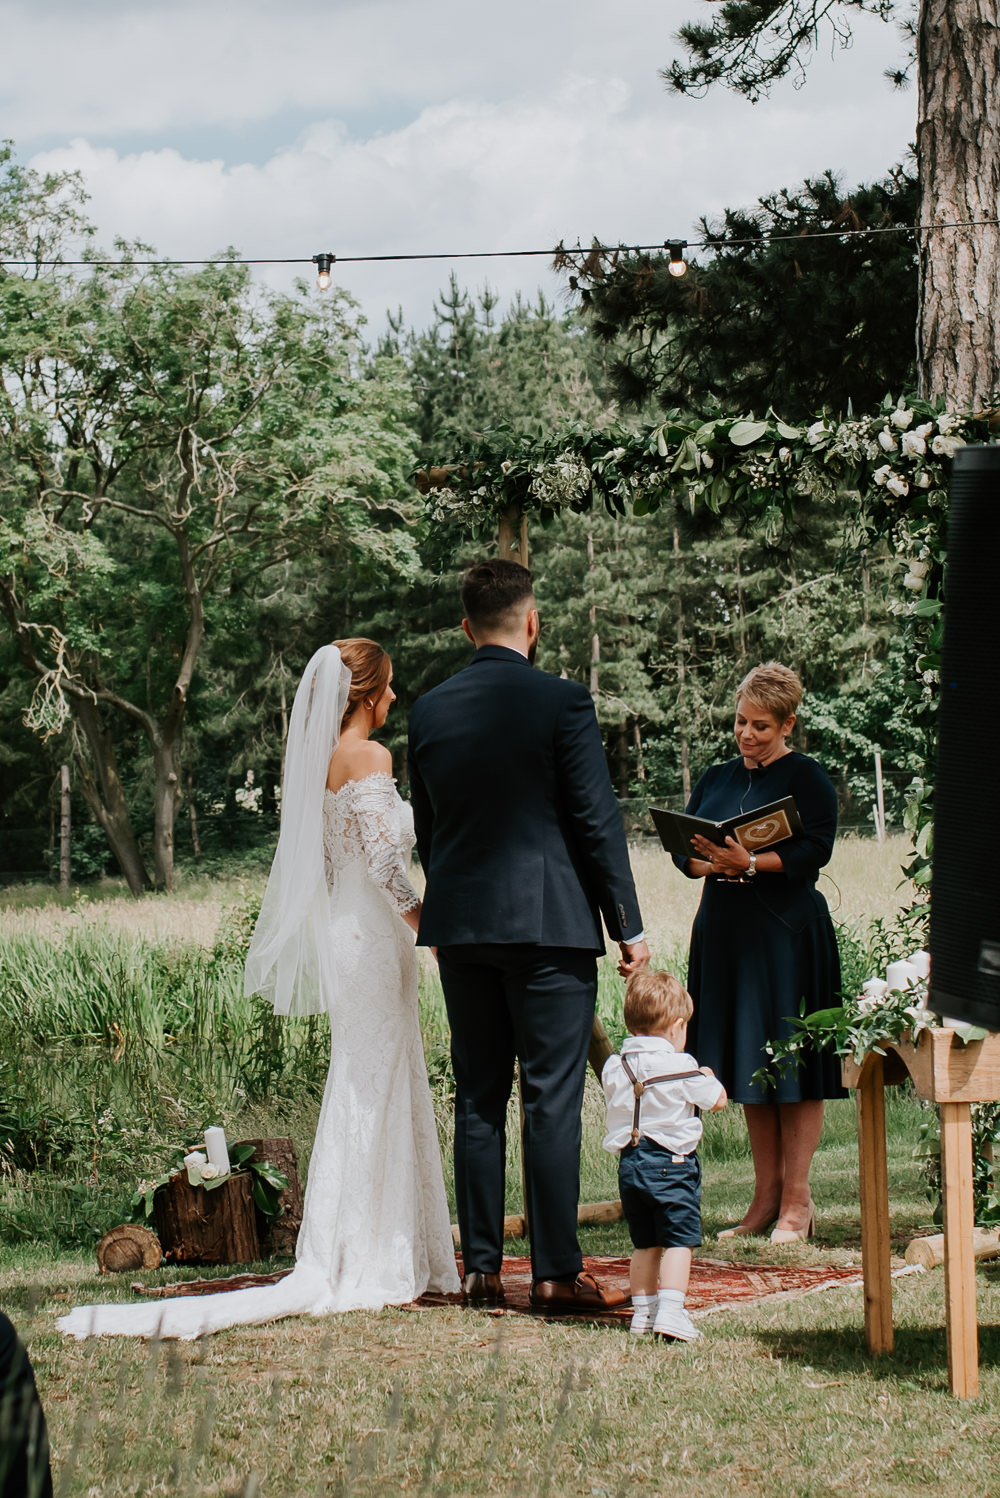 Backdrop Flower Arch Greenery Foliage Outdoor Woodland Ceremony Tipi Hertfordshire Wedding Michelle Cordner Photography